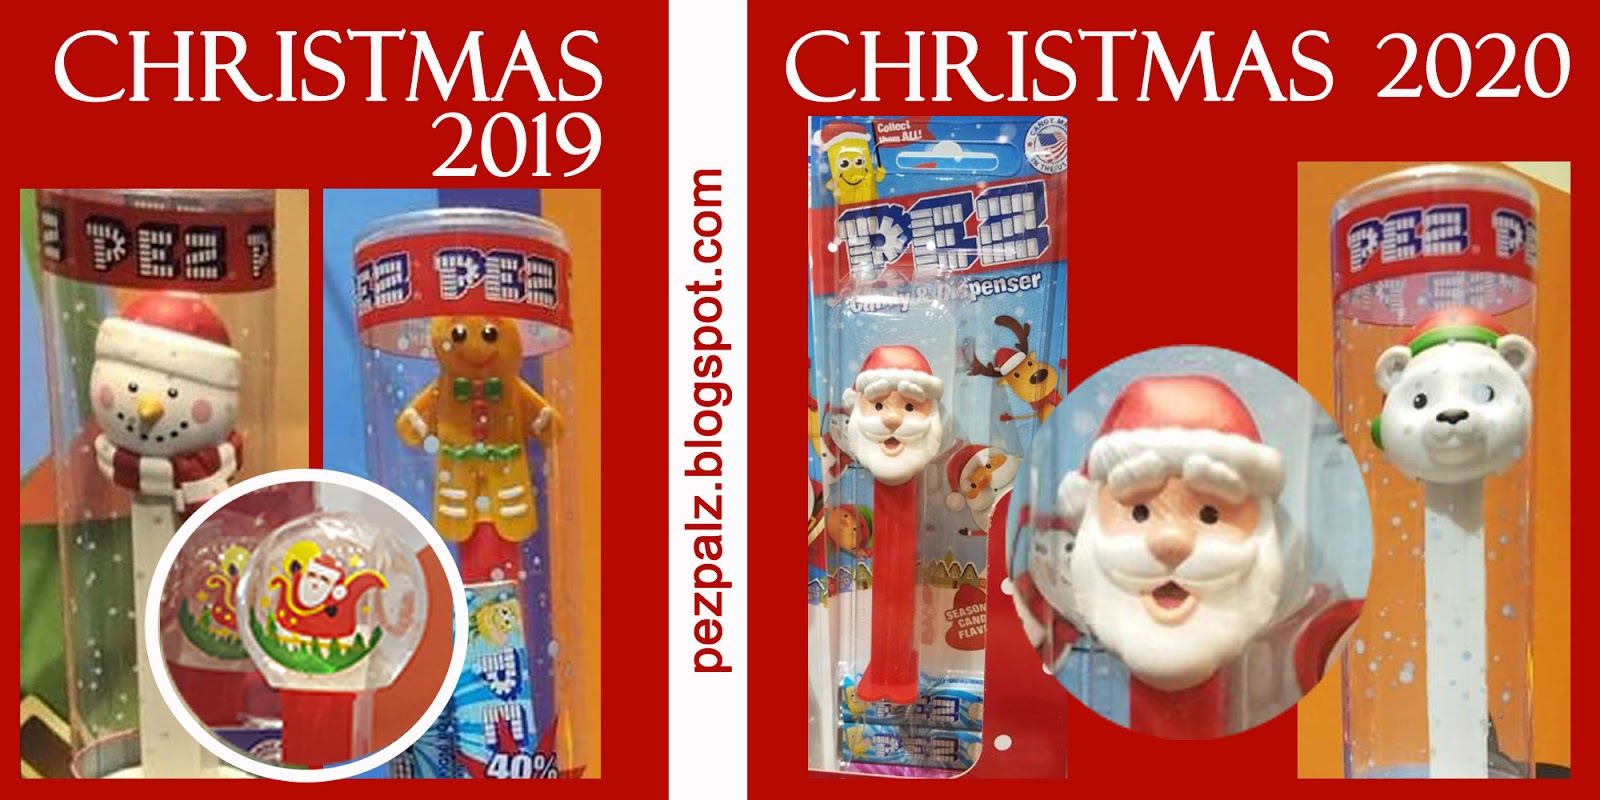 Christmas Pez 2020 Pez Palz Friends of PEZ: 2019 Sweets and Snacks Expo brings us the